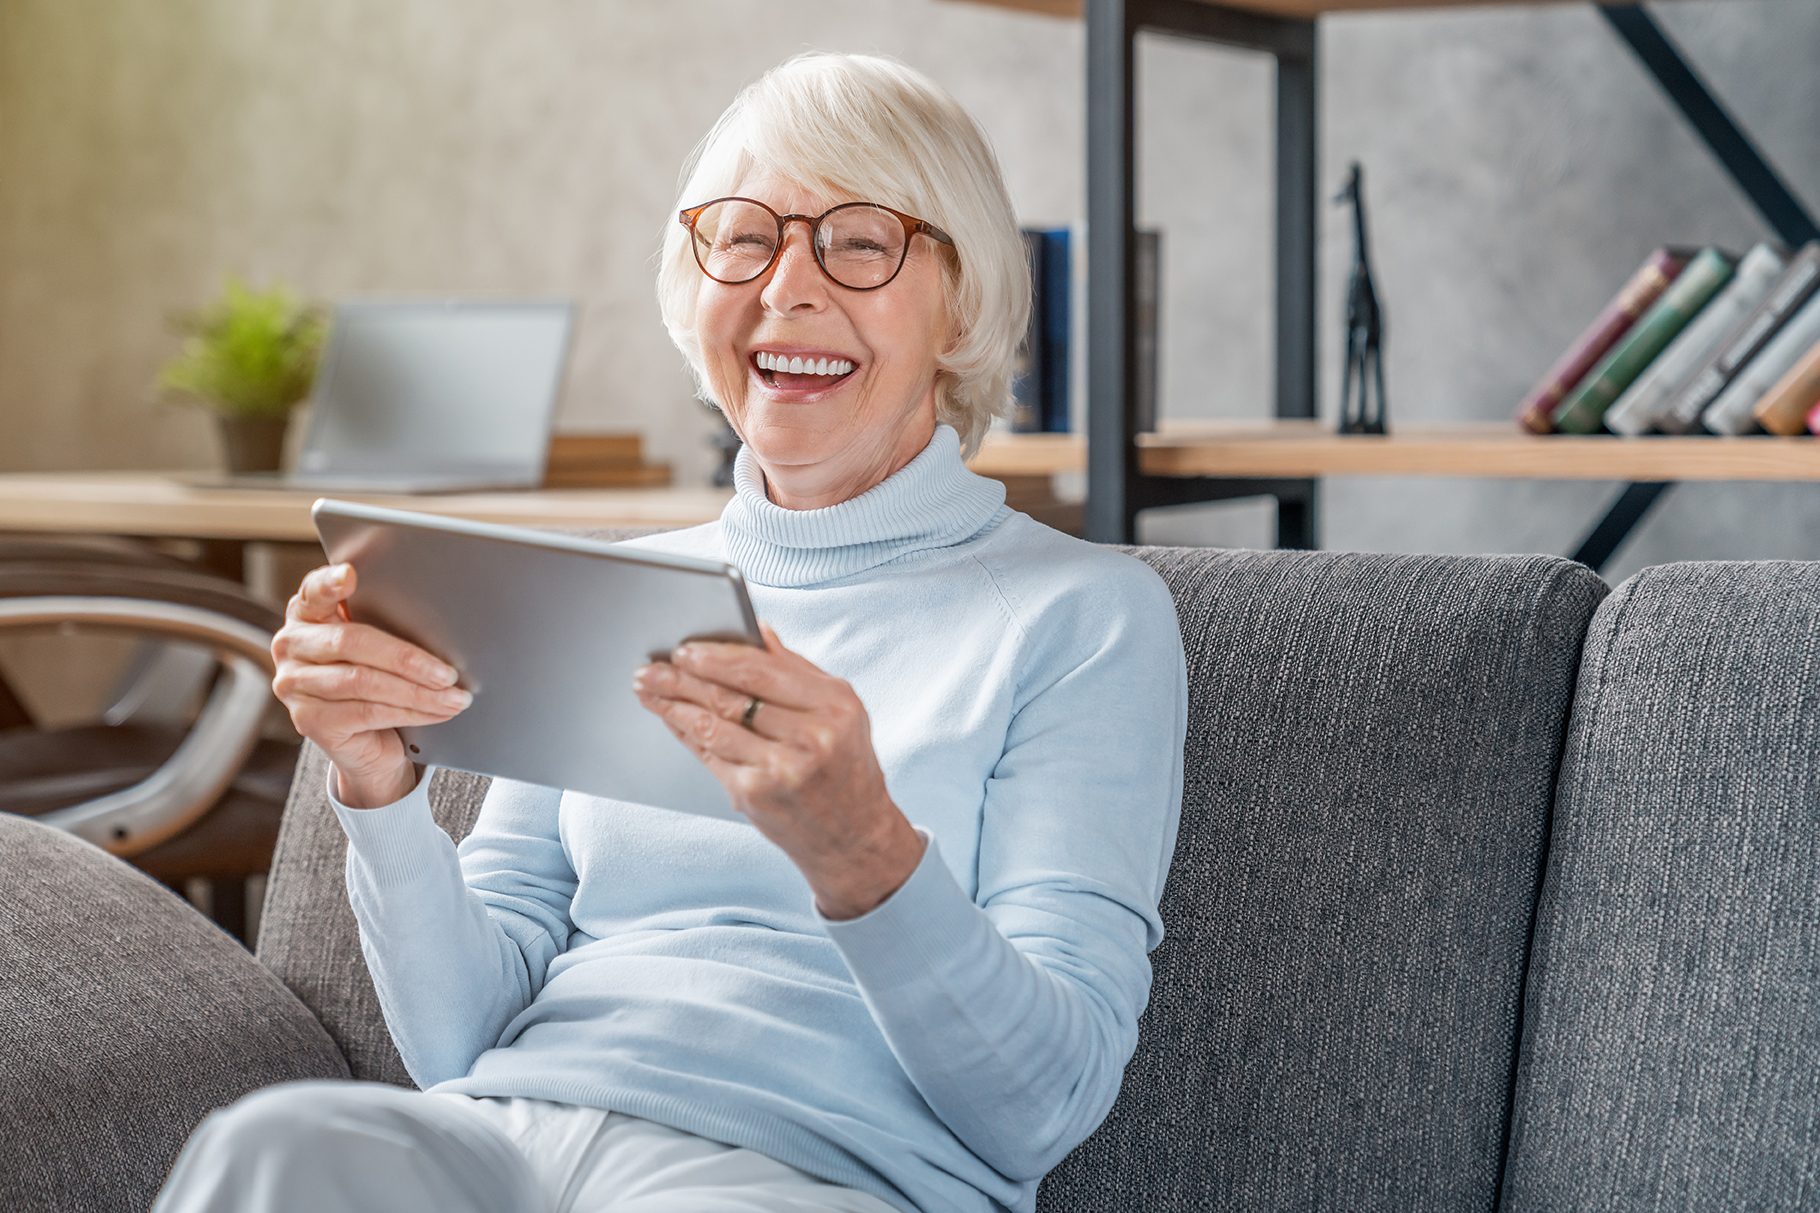 Senior Media Care - Seniorin mit Tablet in der Hand auf dem Sofa